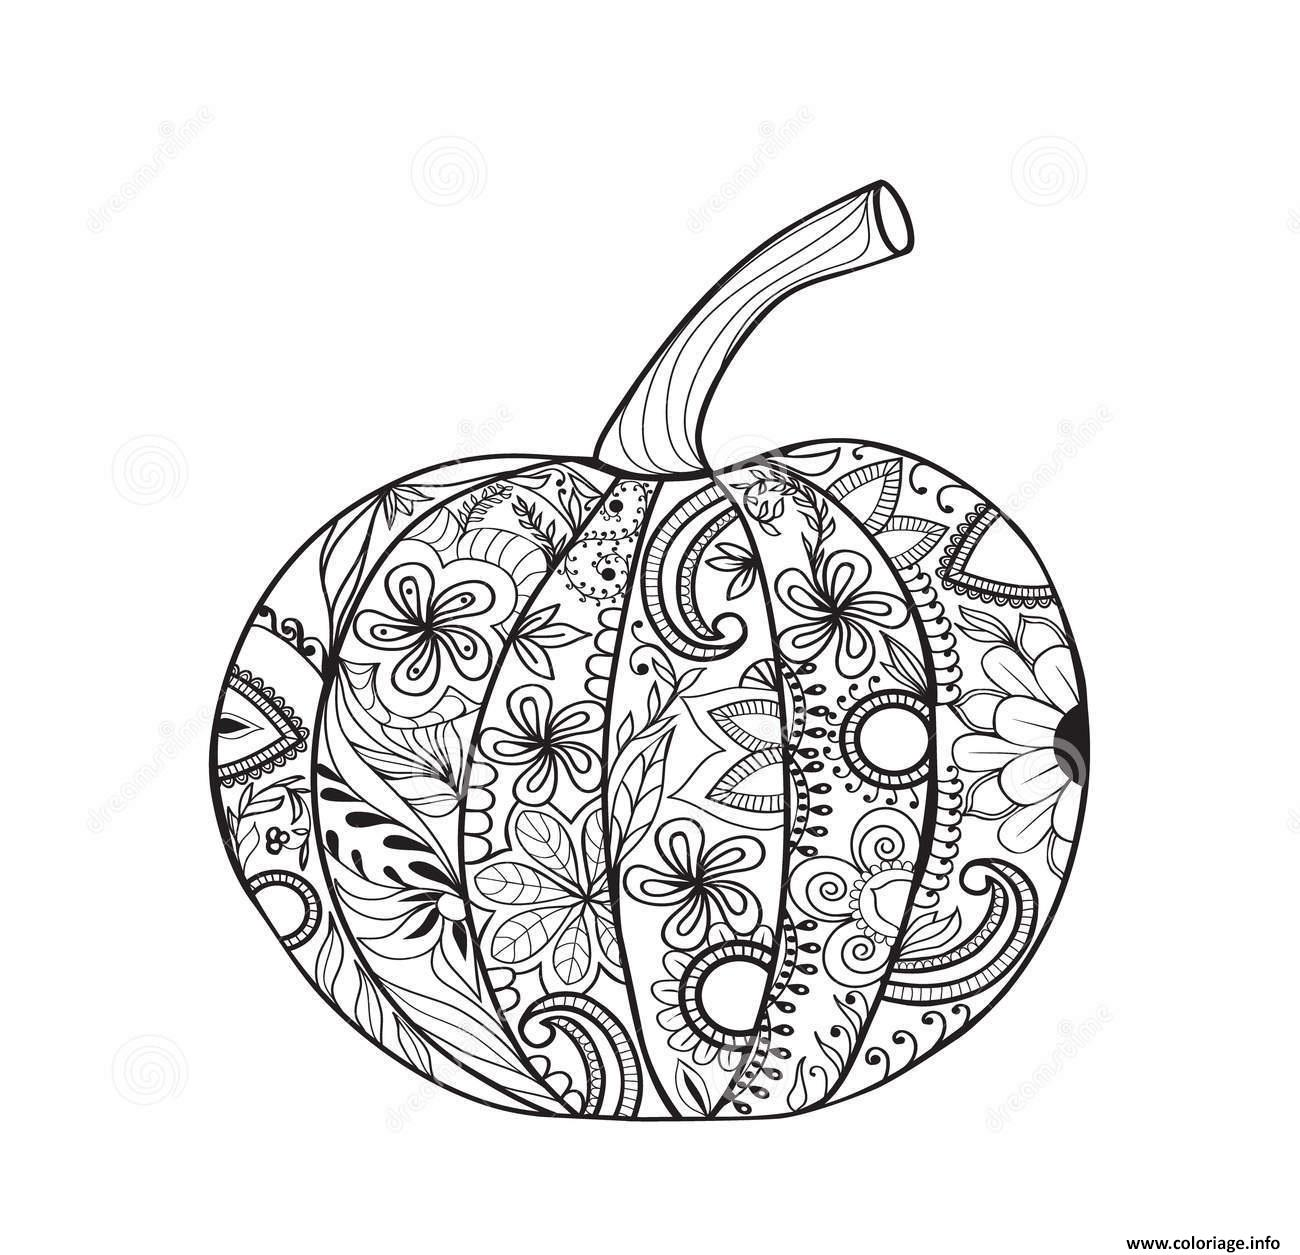 Coloriage citrouille halloween adulte simple - Citrouille a dessiner ...